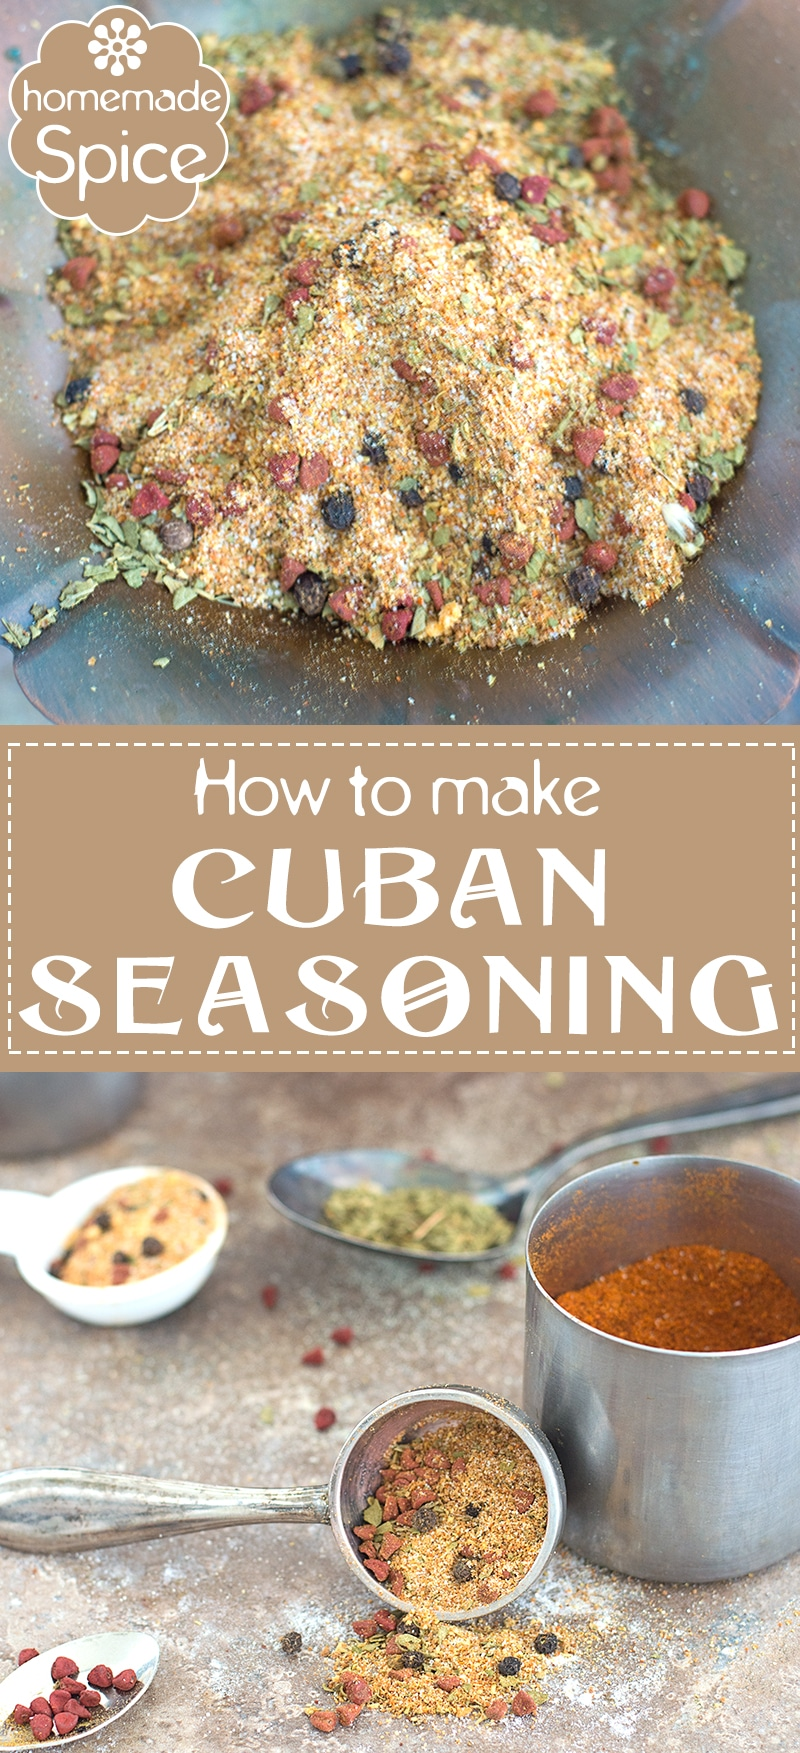 Add a Latin kick to Your Meals by Using this Homemade Cuban Seasoning. Its Quick, Easy and Has A Long Shelf Life. The Annatto Seeds are the Perfect Base for this Spice. | DIY, How to ideas, How to make spices at home, Cuban Cusine